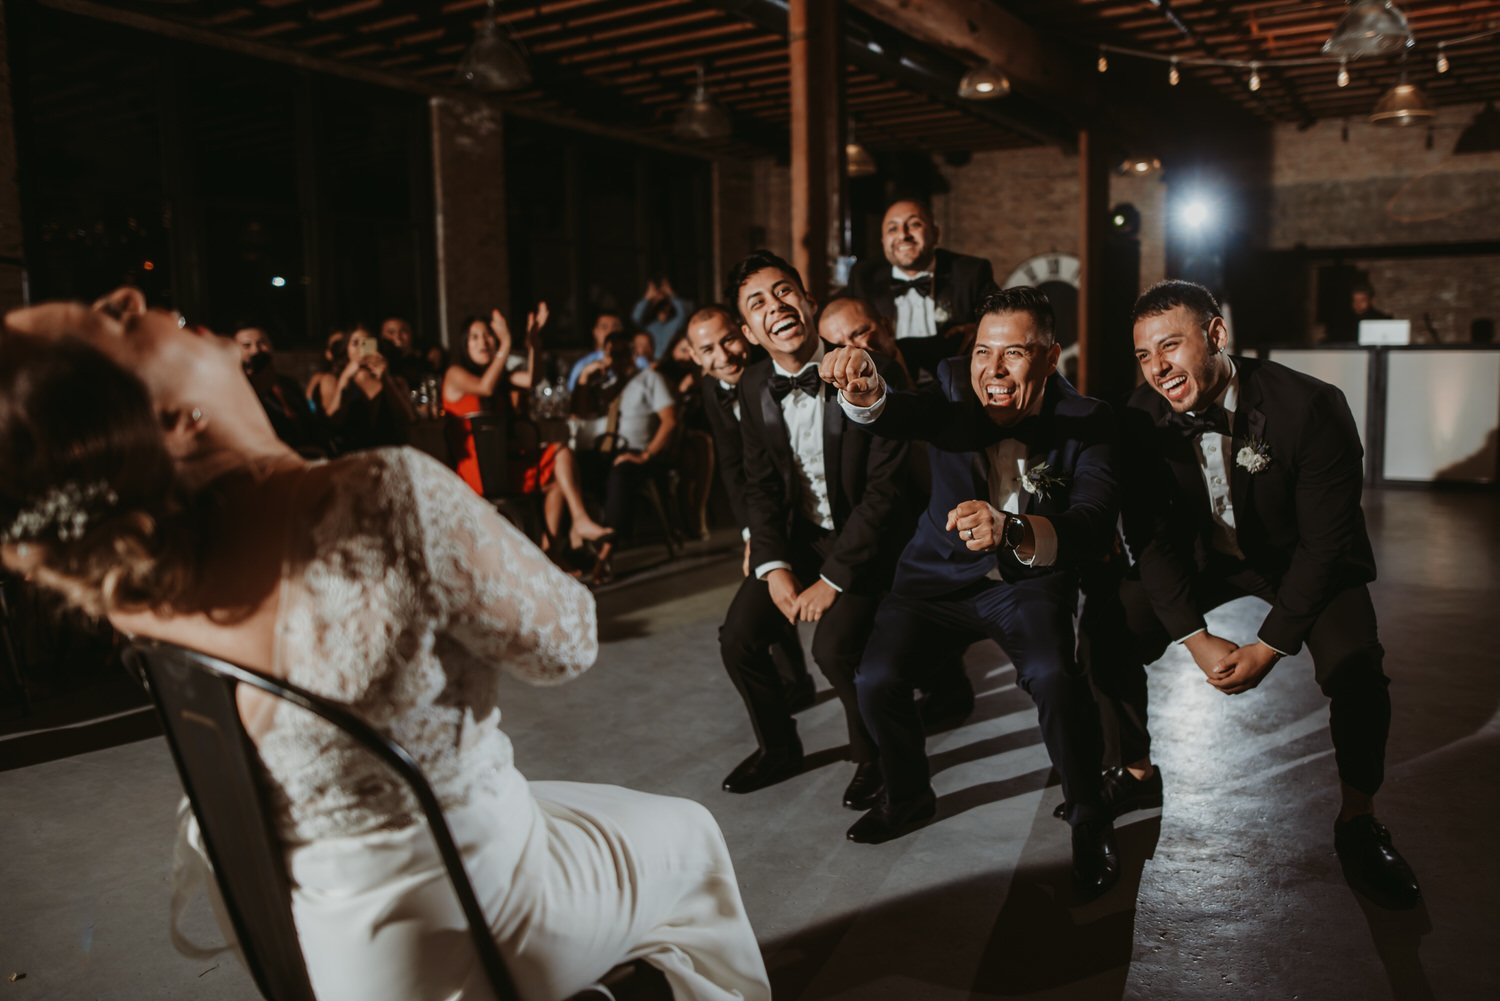 Chicago vow renewal, Groomsmen funny dance, wedding photography, The Adamkovi